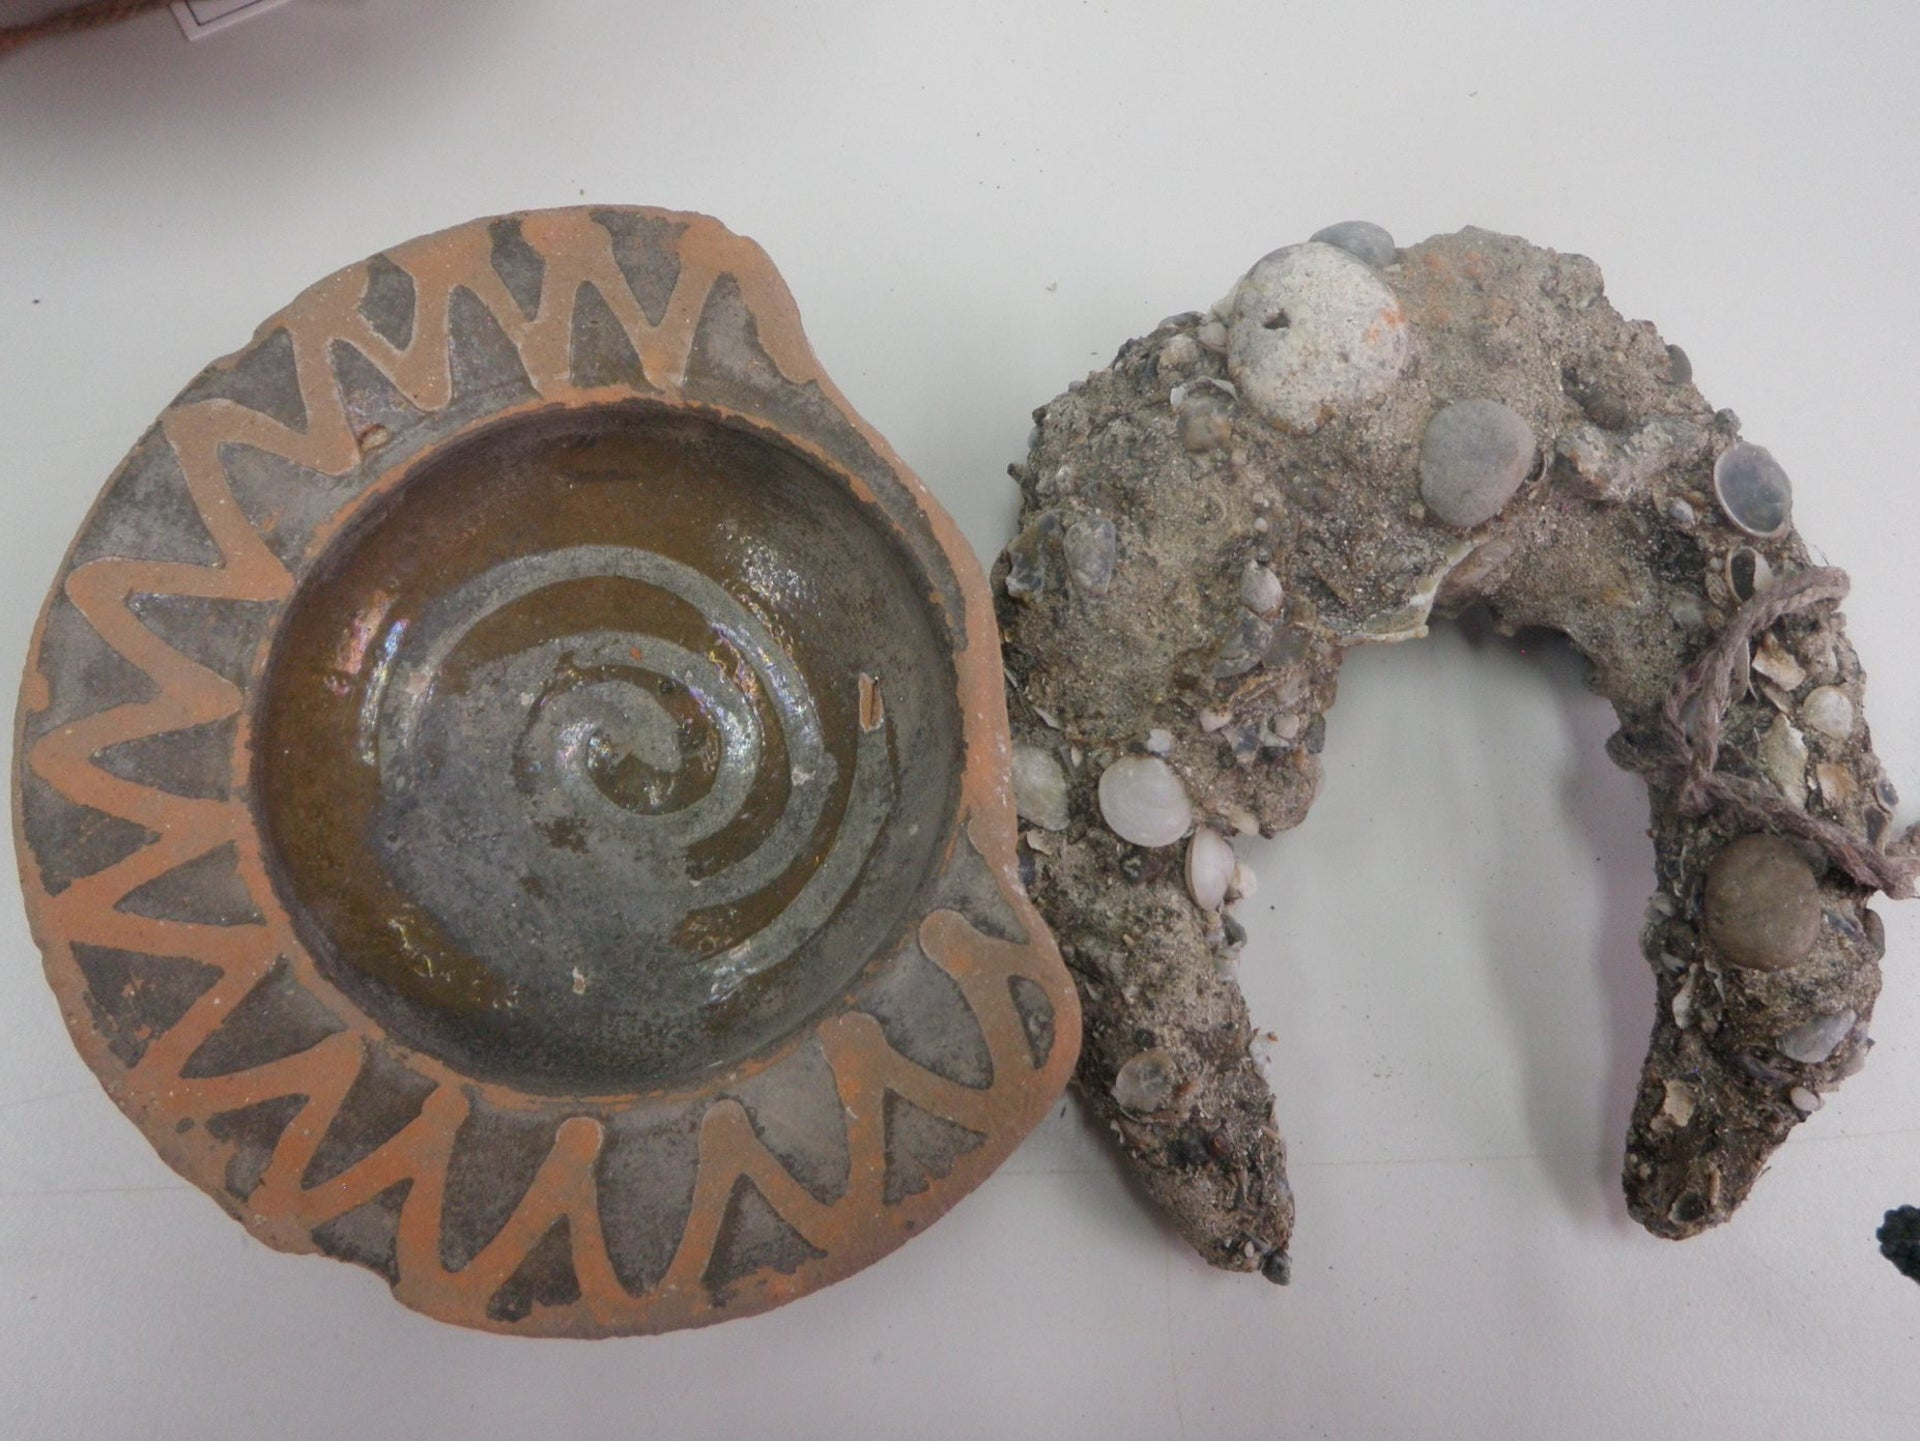 Glazed Crusader bowl and horseshoe, imported from Europe, found in Acre.